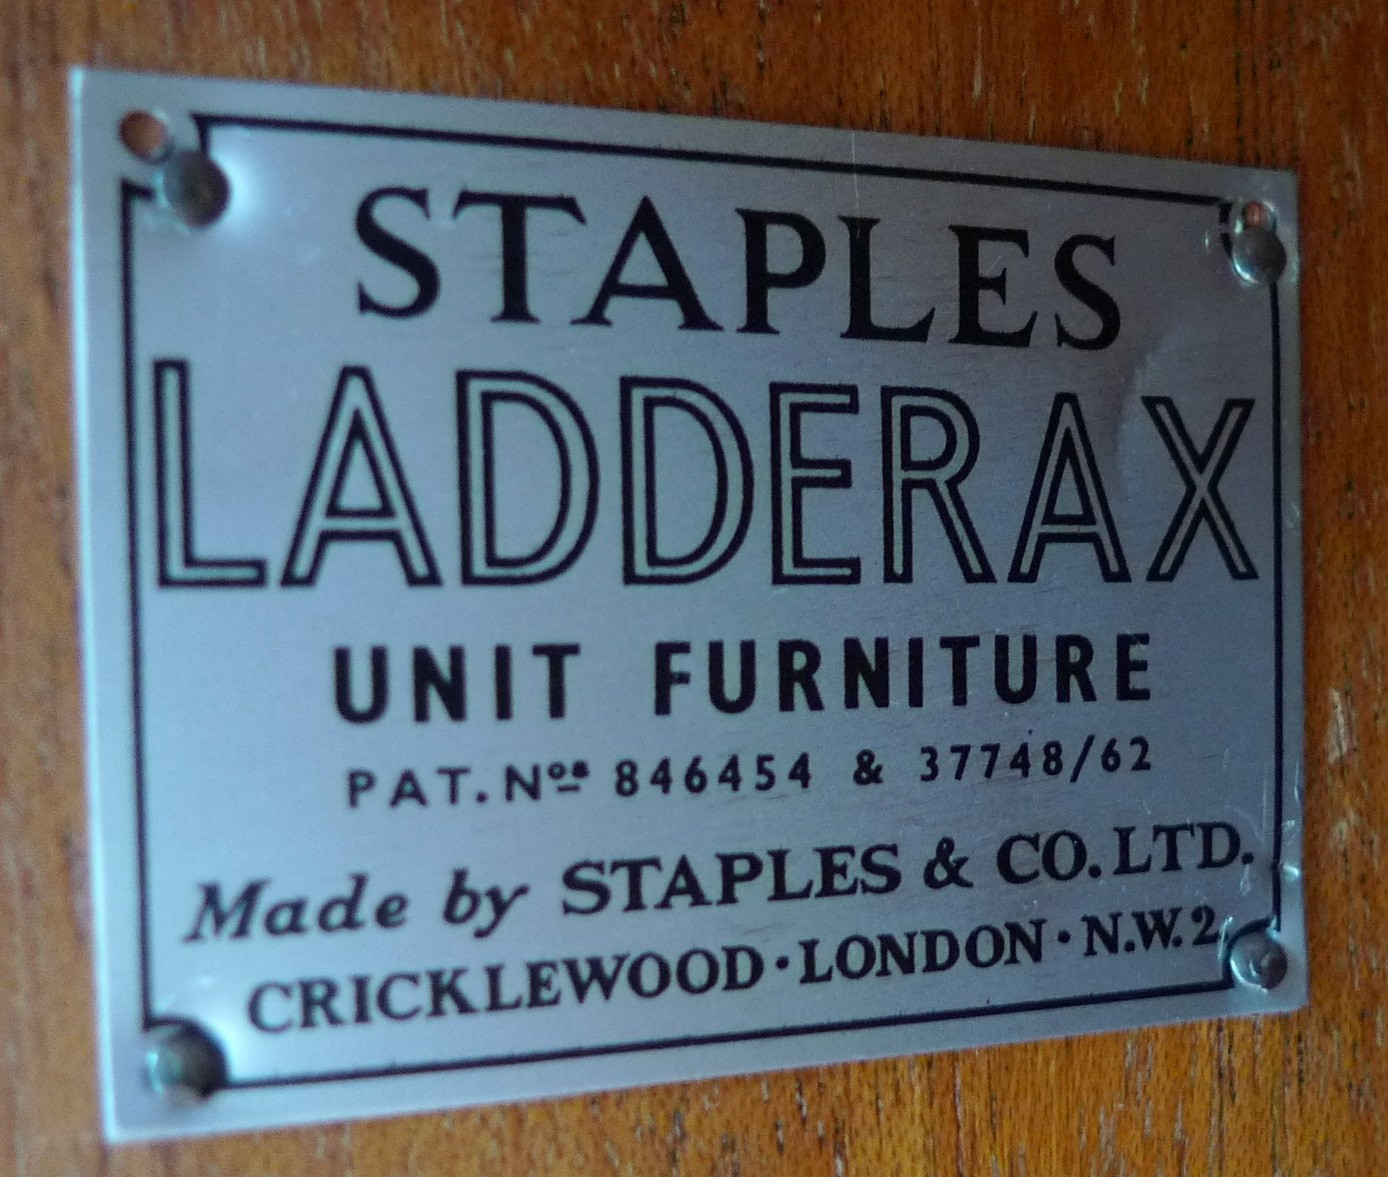 A set of Ladderax, Staples, adjustable shelving units, with four storage, desk and drawer units, - Image 2 of 3